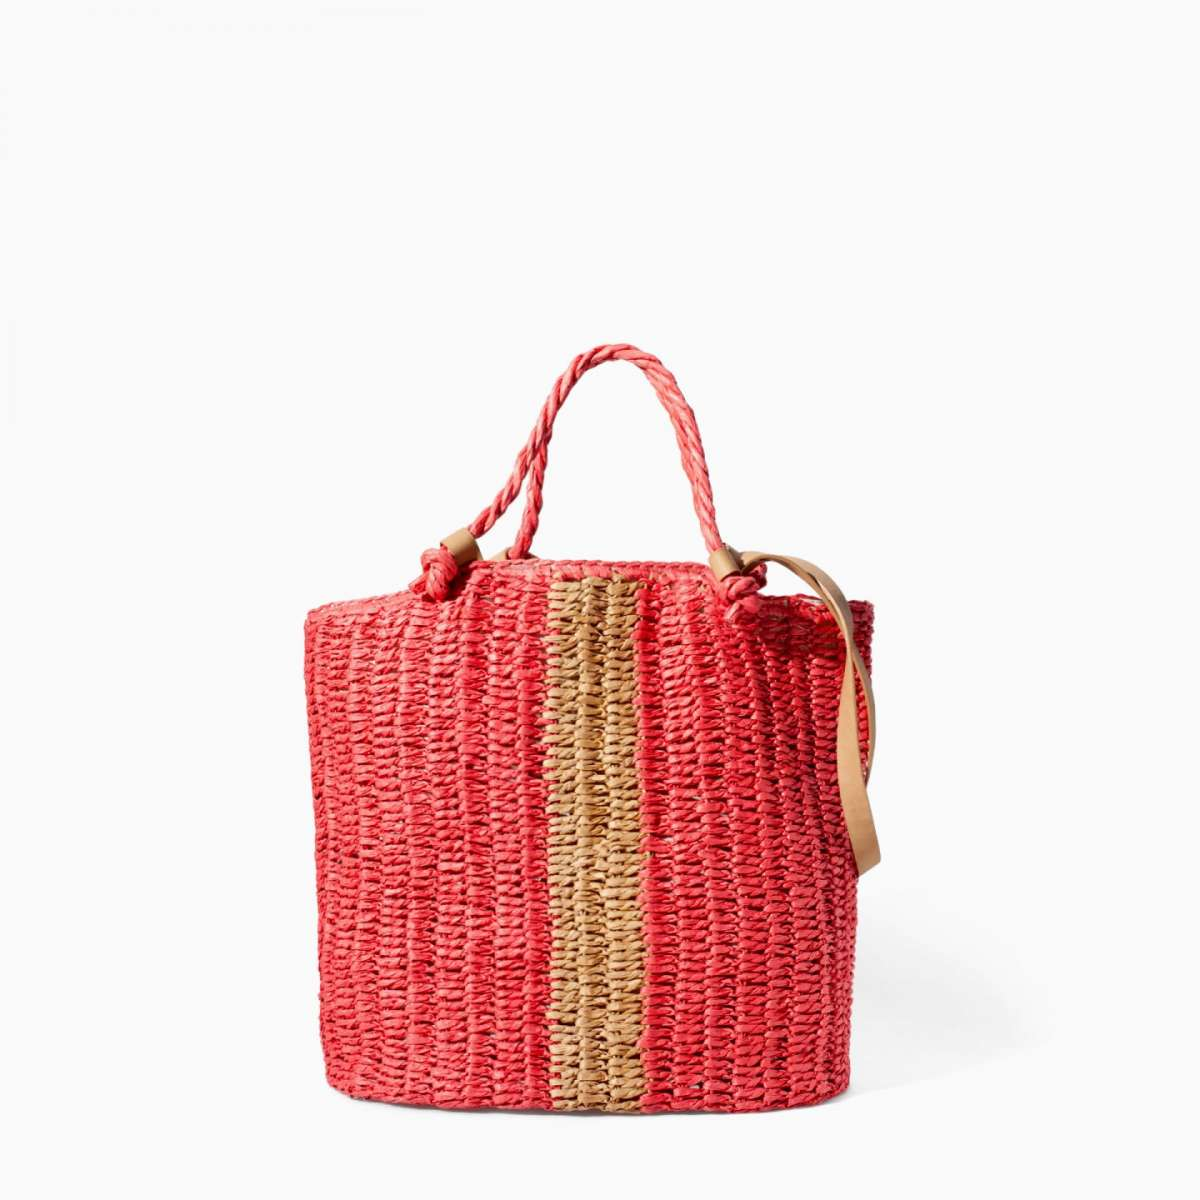 Borsa in rafia colorata Zara